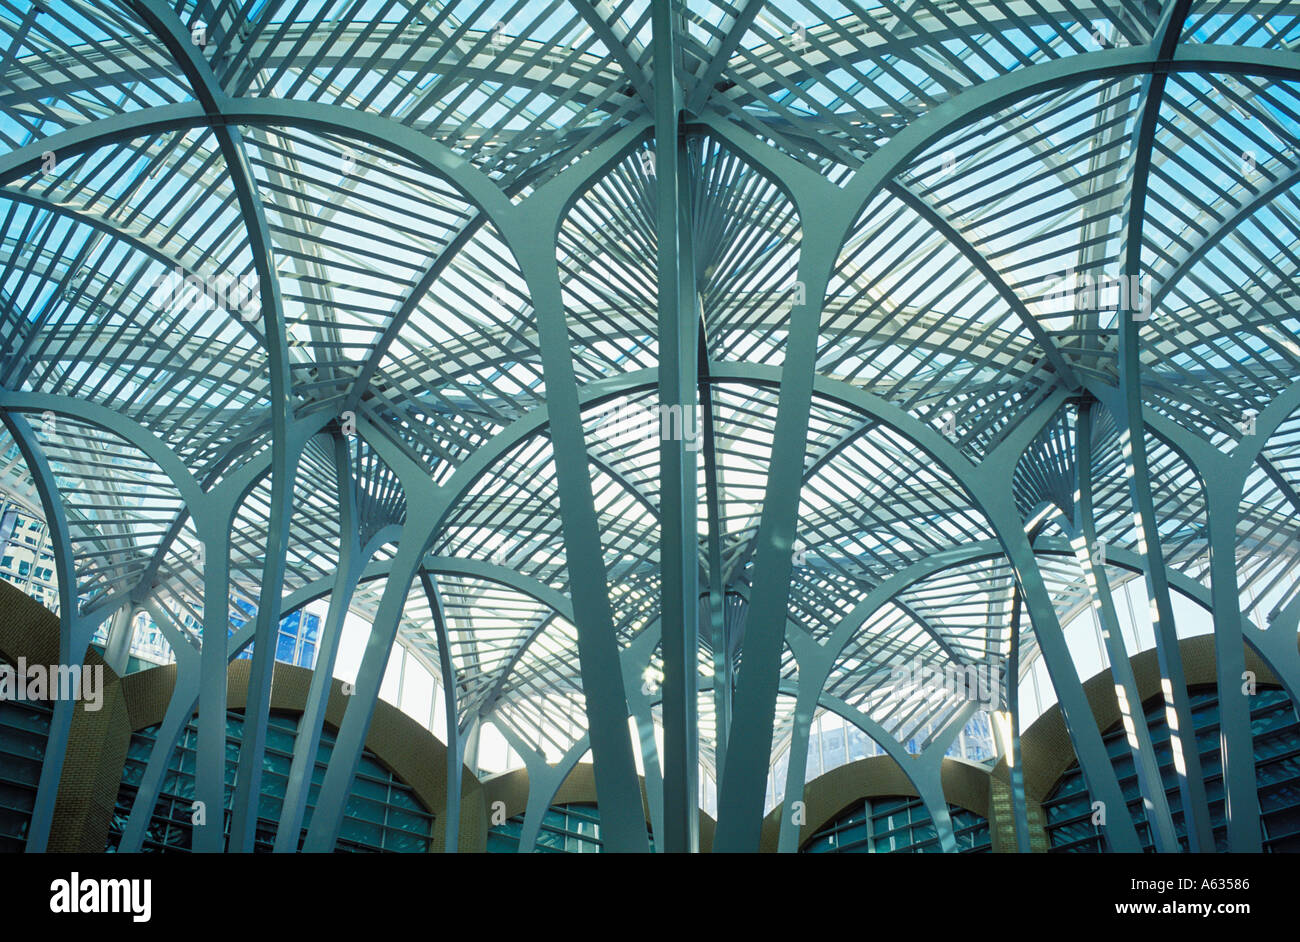 Canada Ontario Toronto, interior of BCE Place detail of roof structure - Stock Image